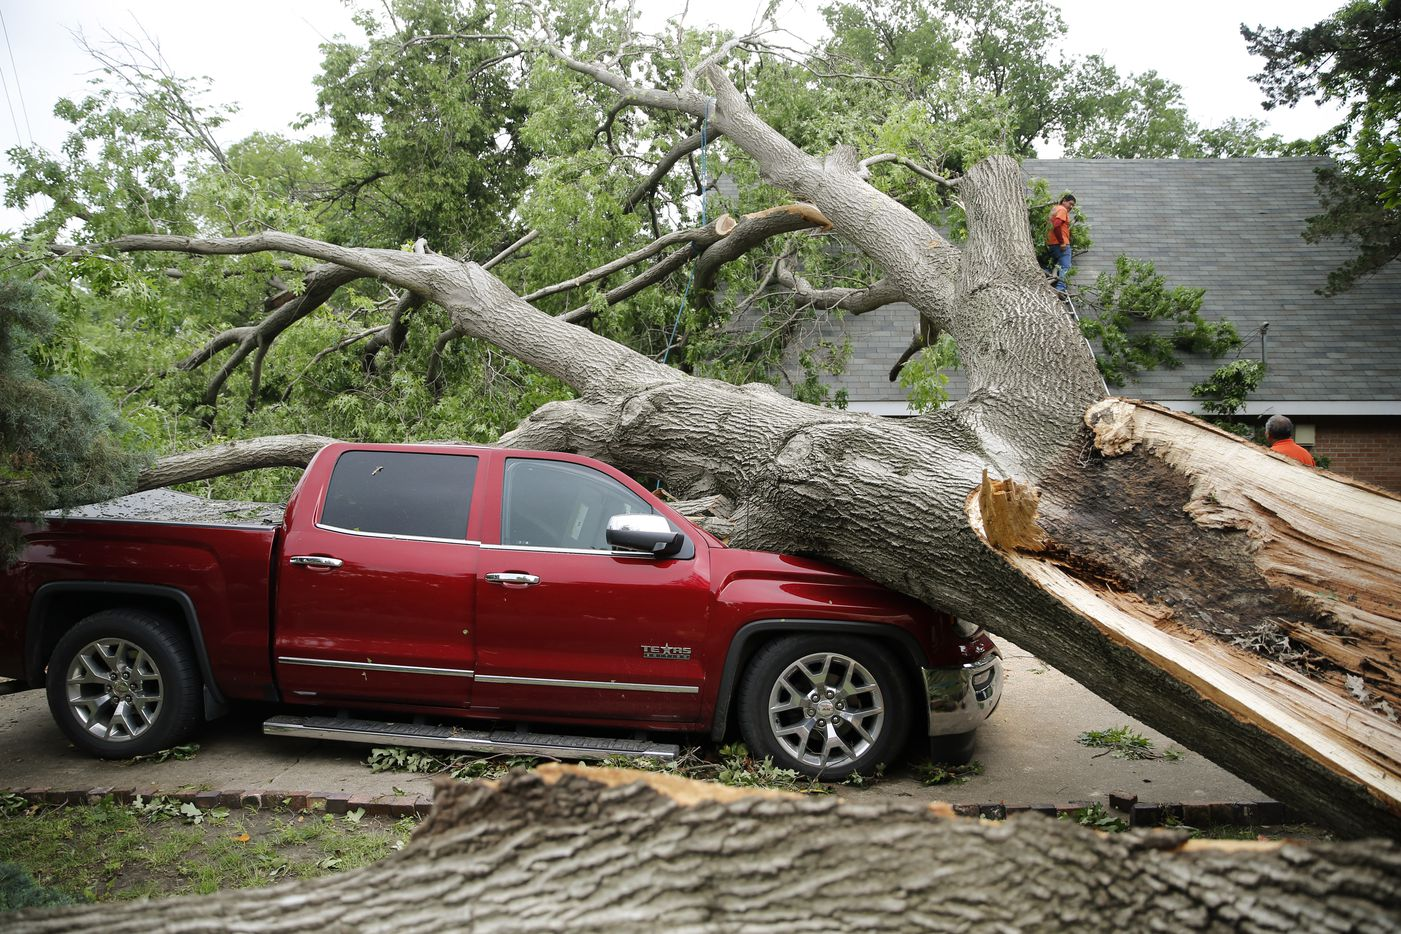 A red oak crushed a truck in Denton during a tornado Tuesday.